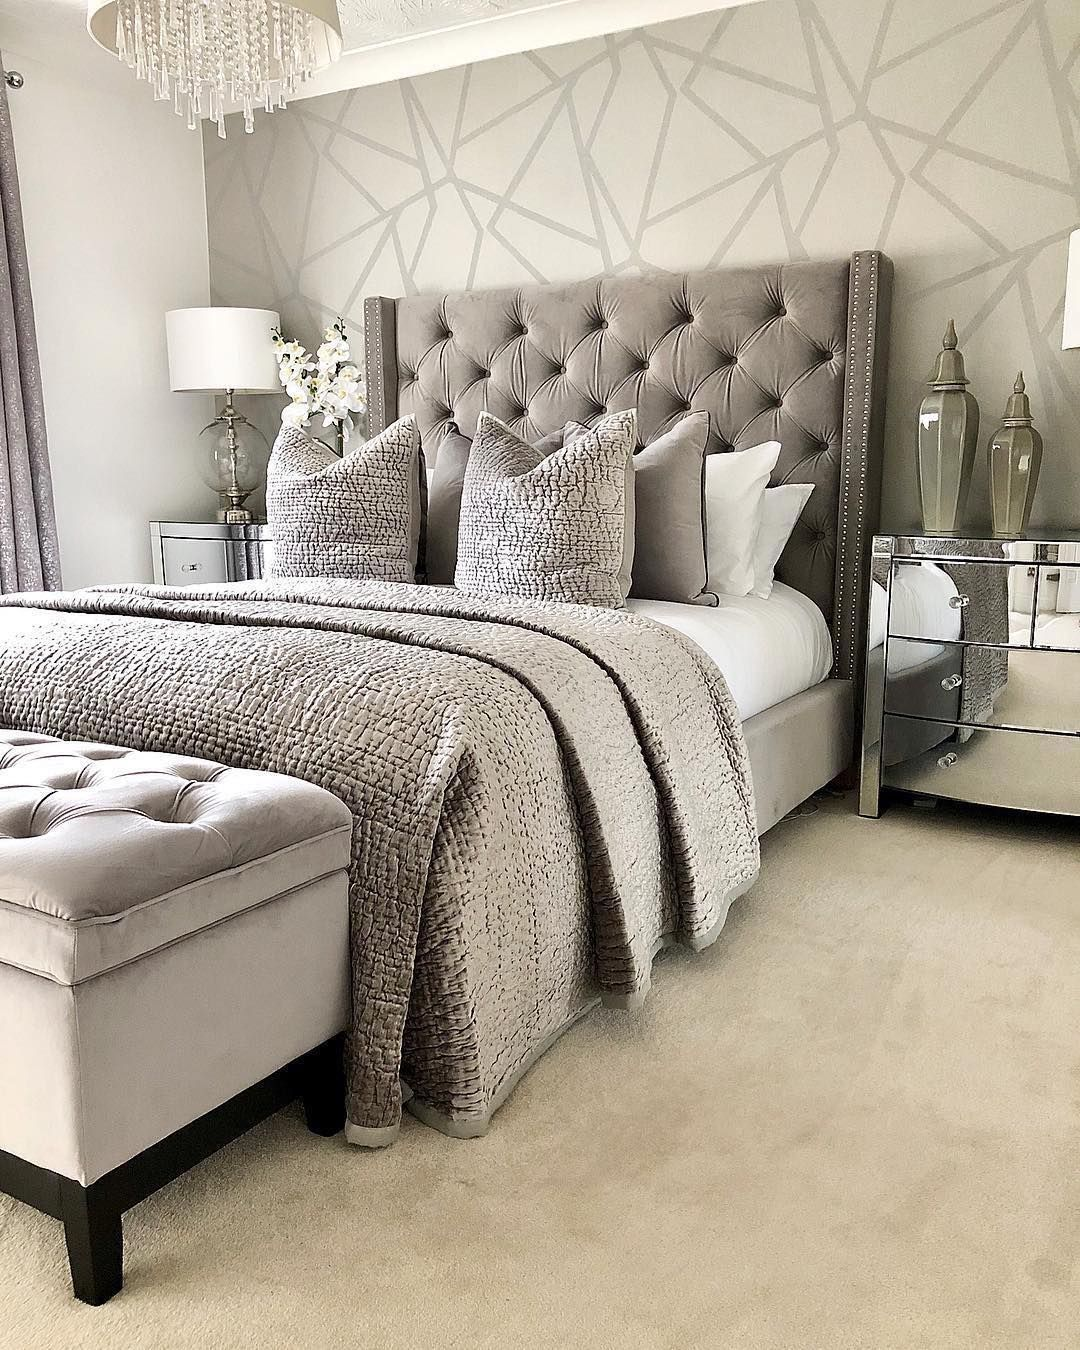 Sleep Tight Tonight In A Comfy Space Courtesy Of Our Collection Of Modern Day Bed Room Concepts Dis Bedroom Interior Stylish Bedroom Design Home Decor Bedroom